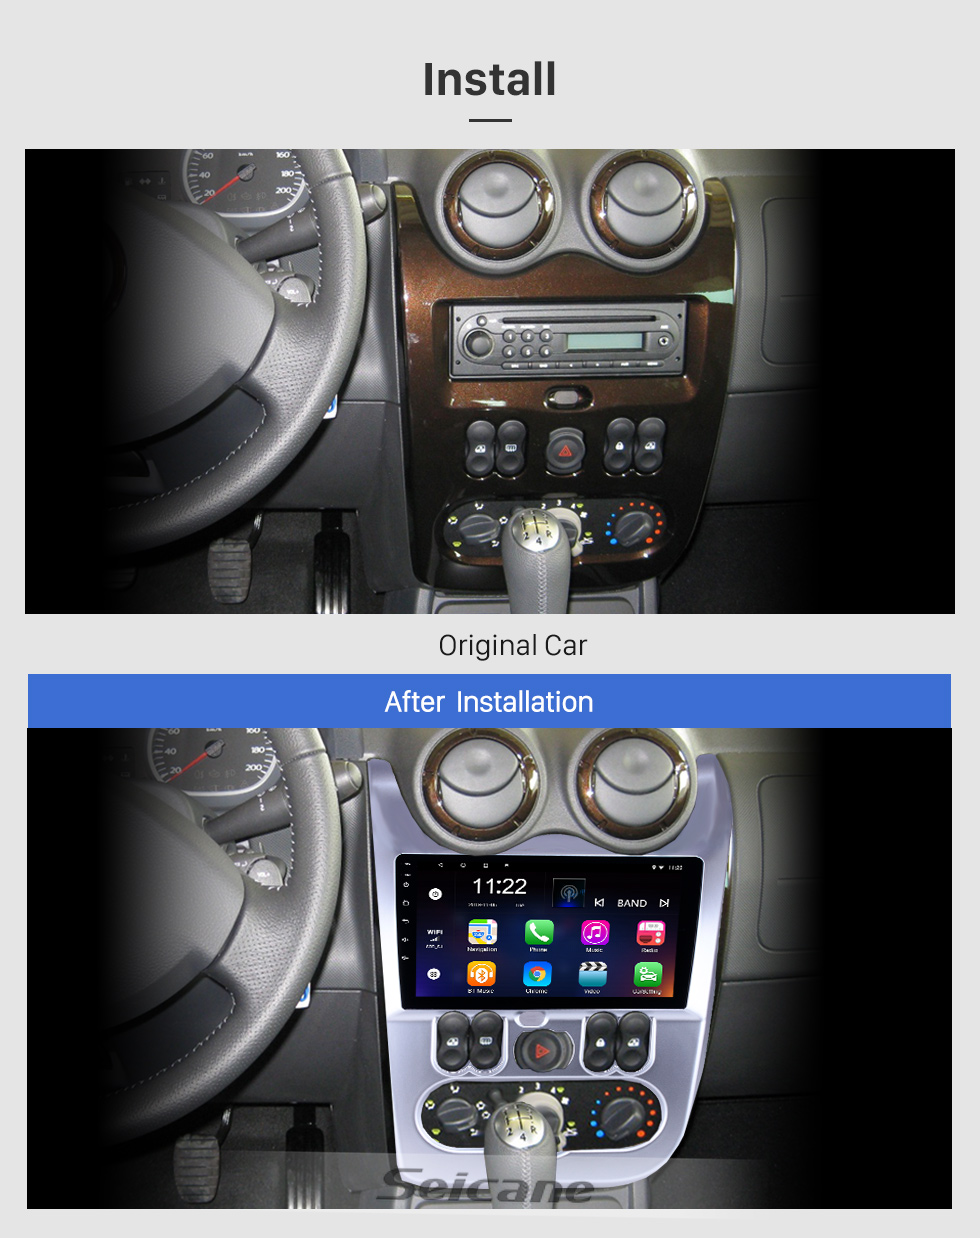 Seicane 2009-2013 Renault Duster/Logan 9 inch Android 8.1 HD Touchscreen Bluetooth GPS Navigation Radio USB AUX support Carplay 3G WIFI Backup camera